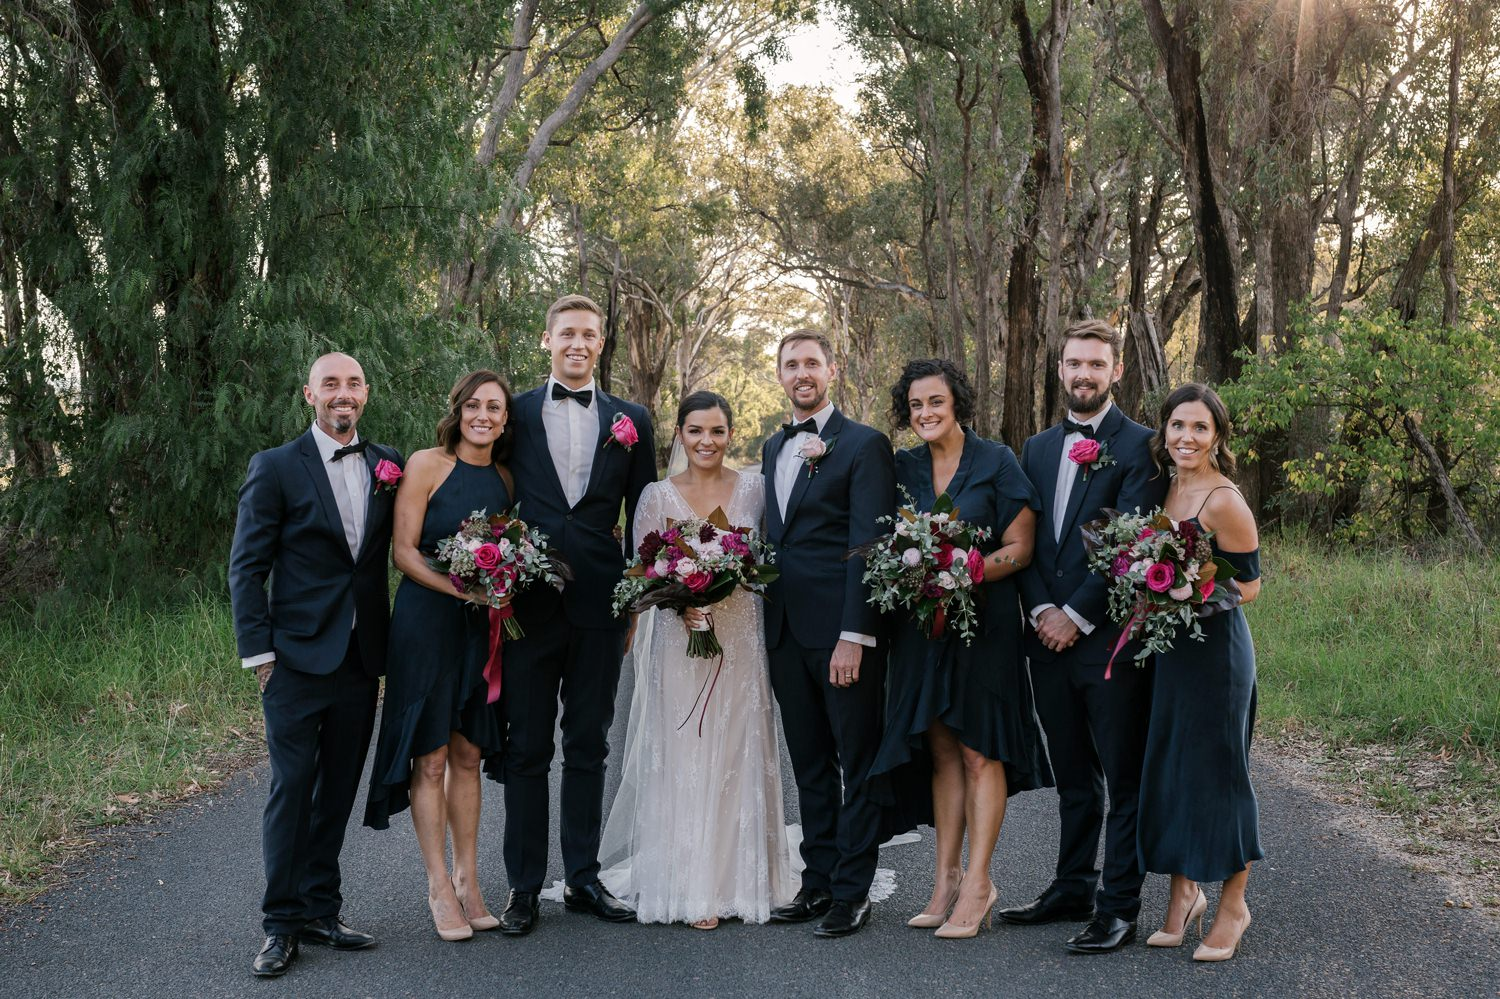 sarah jared the vinegrove mudgee canberra wedding photographer erin latimore 74.jpg